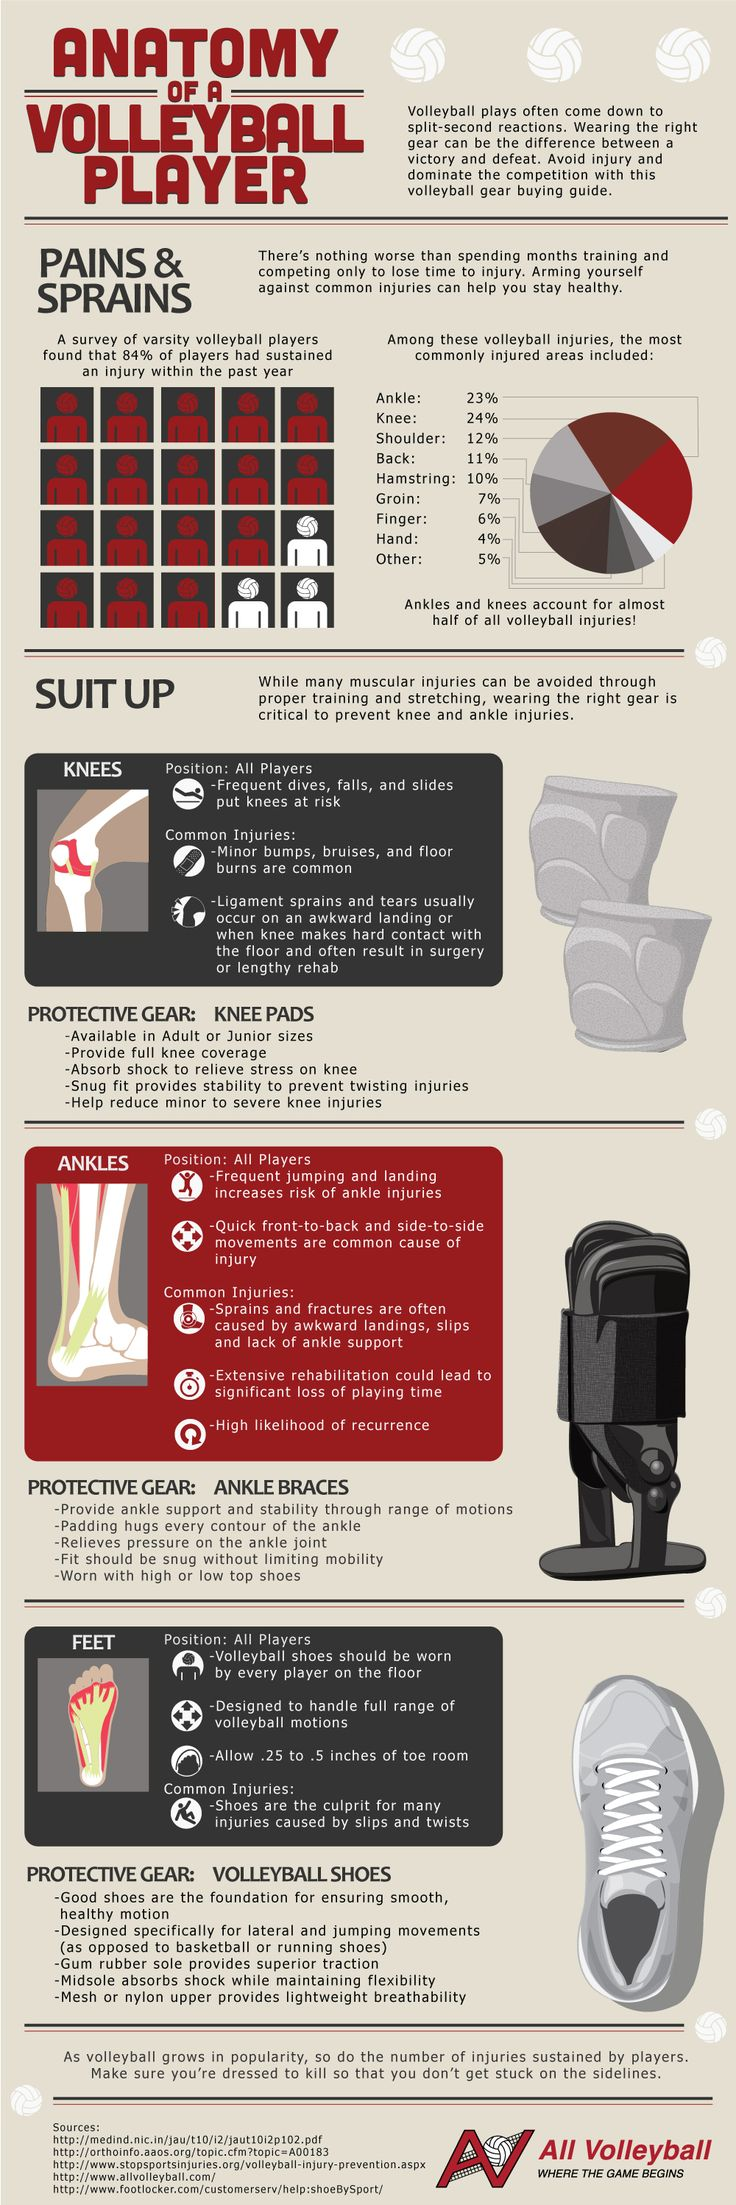 Learn how to protect knees and elbows with All Volleyball gear!